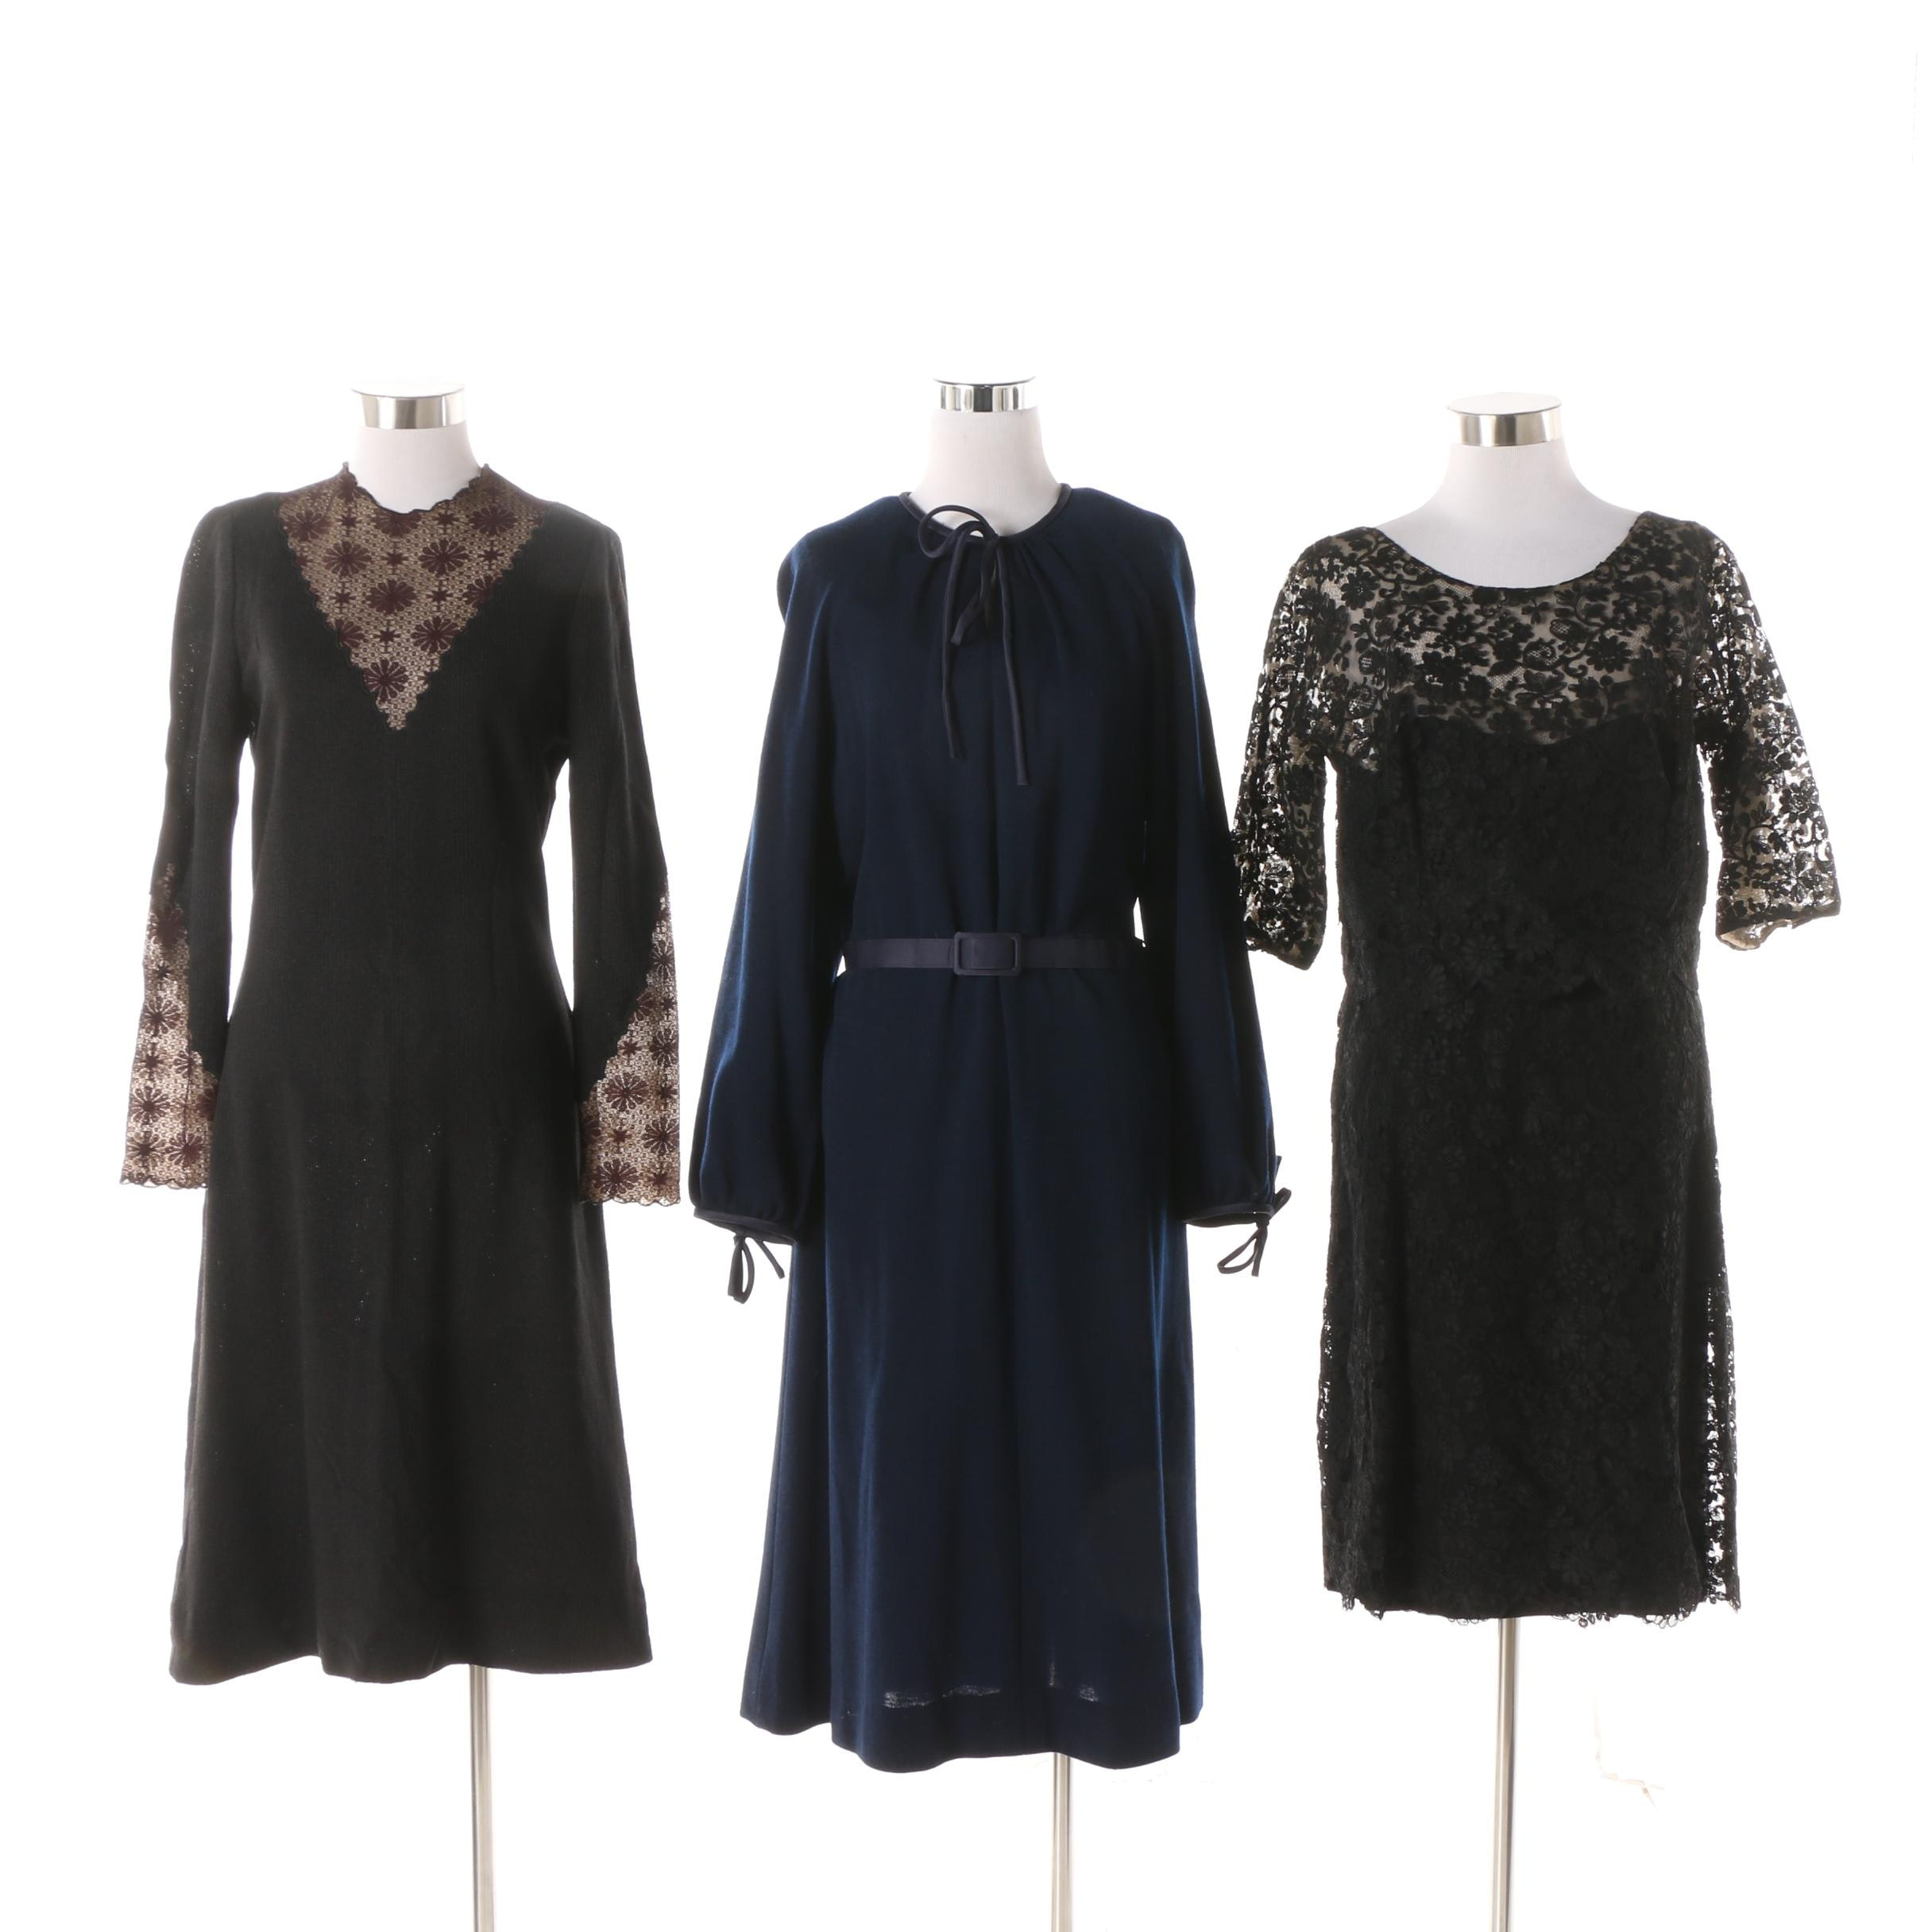 Women's 1960s Vintage Occasion and Cocktail Dresses including Neiman Marcus